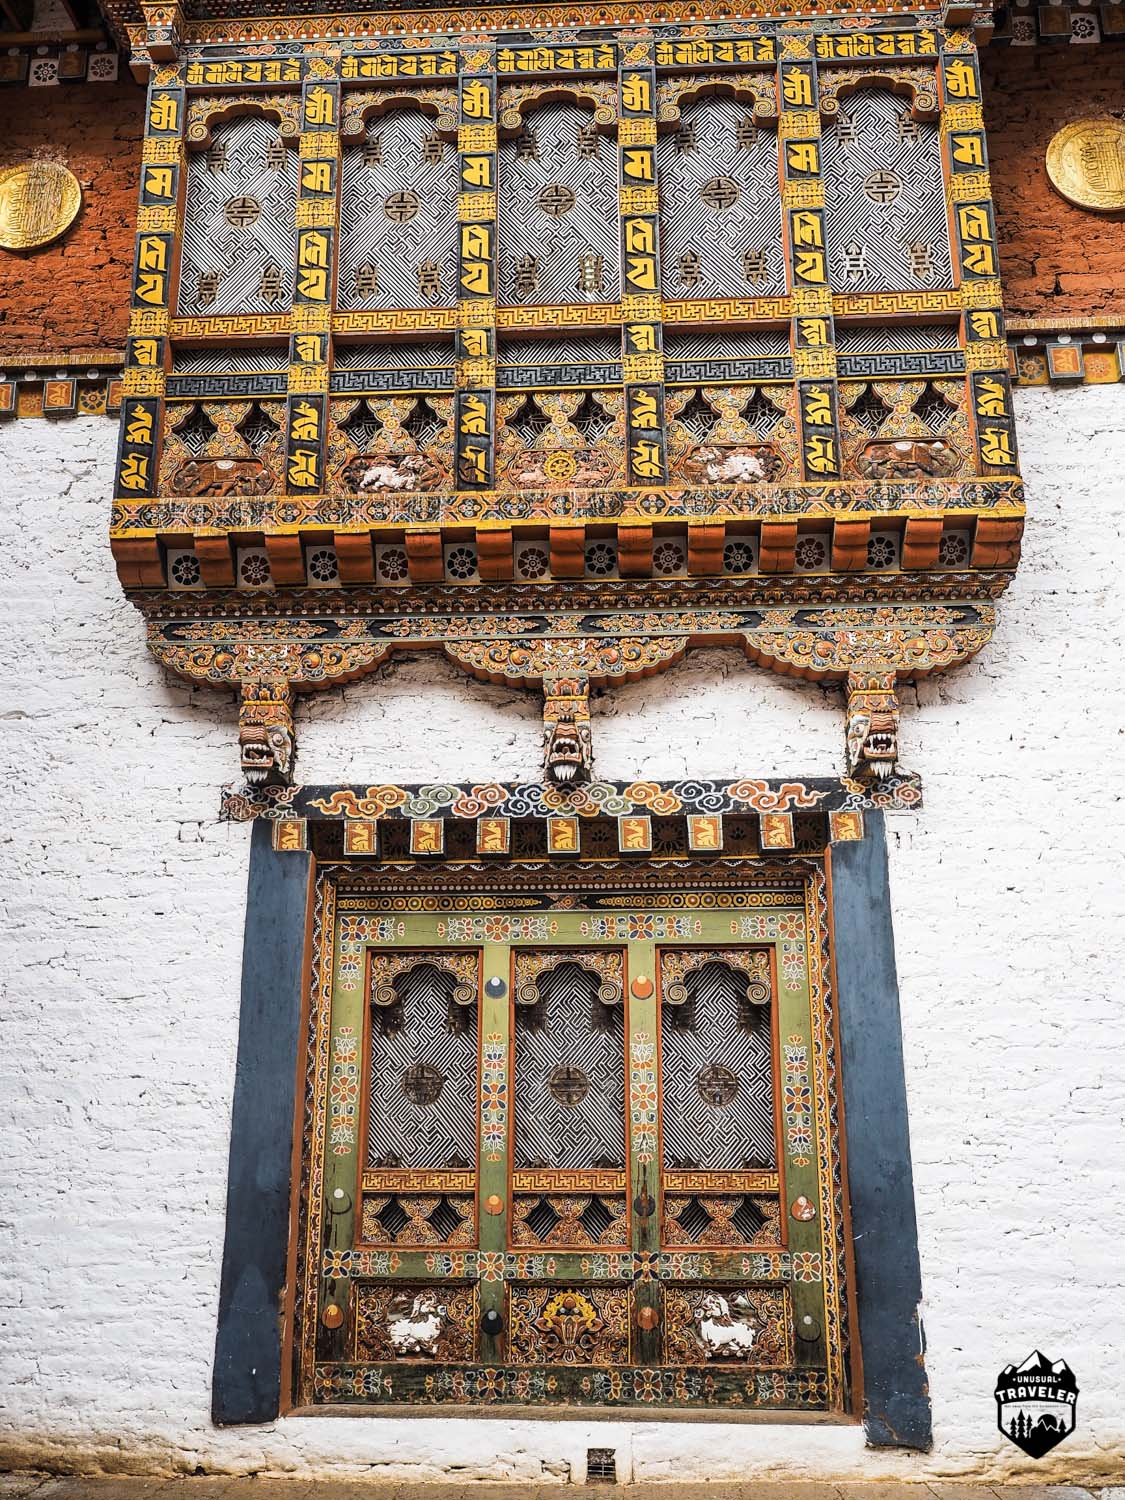 The most impressive wood frames in the world? Made completely without help of modern tools inside Punakha Dzong.